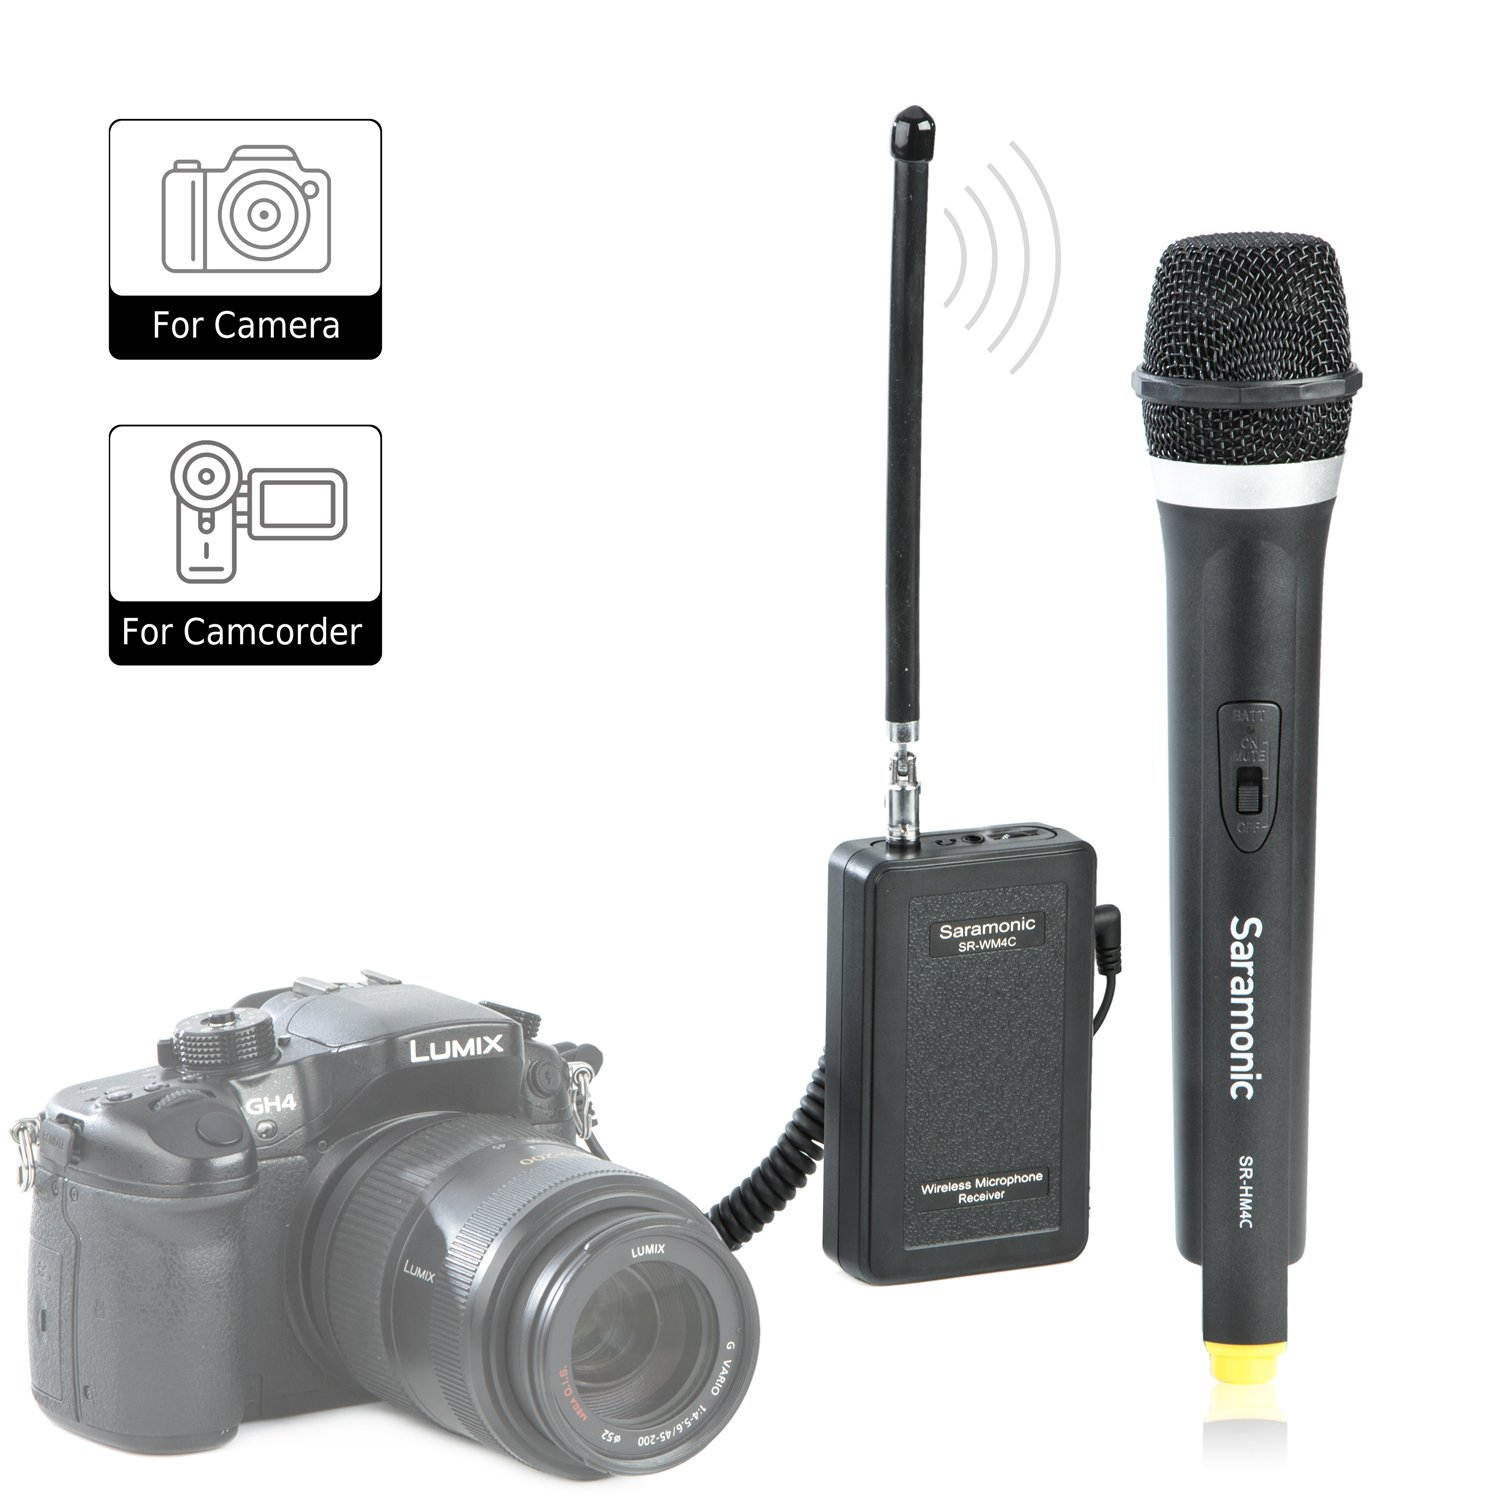 Saramonic WM4CA Professional Portable Wireless VHF Handheld Microphone System for DSLR Camera / Video Camcorder , Compatible with Canon / Nikon / Sony / Panasonic / BlackMagic / Zoom / Tascam / Roland